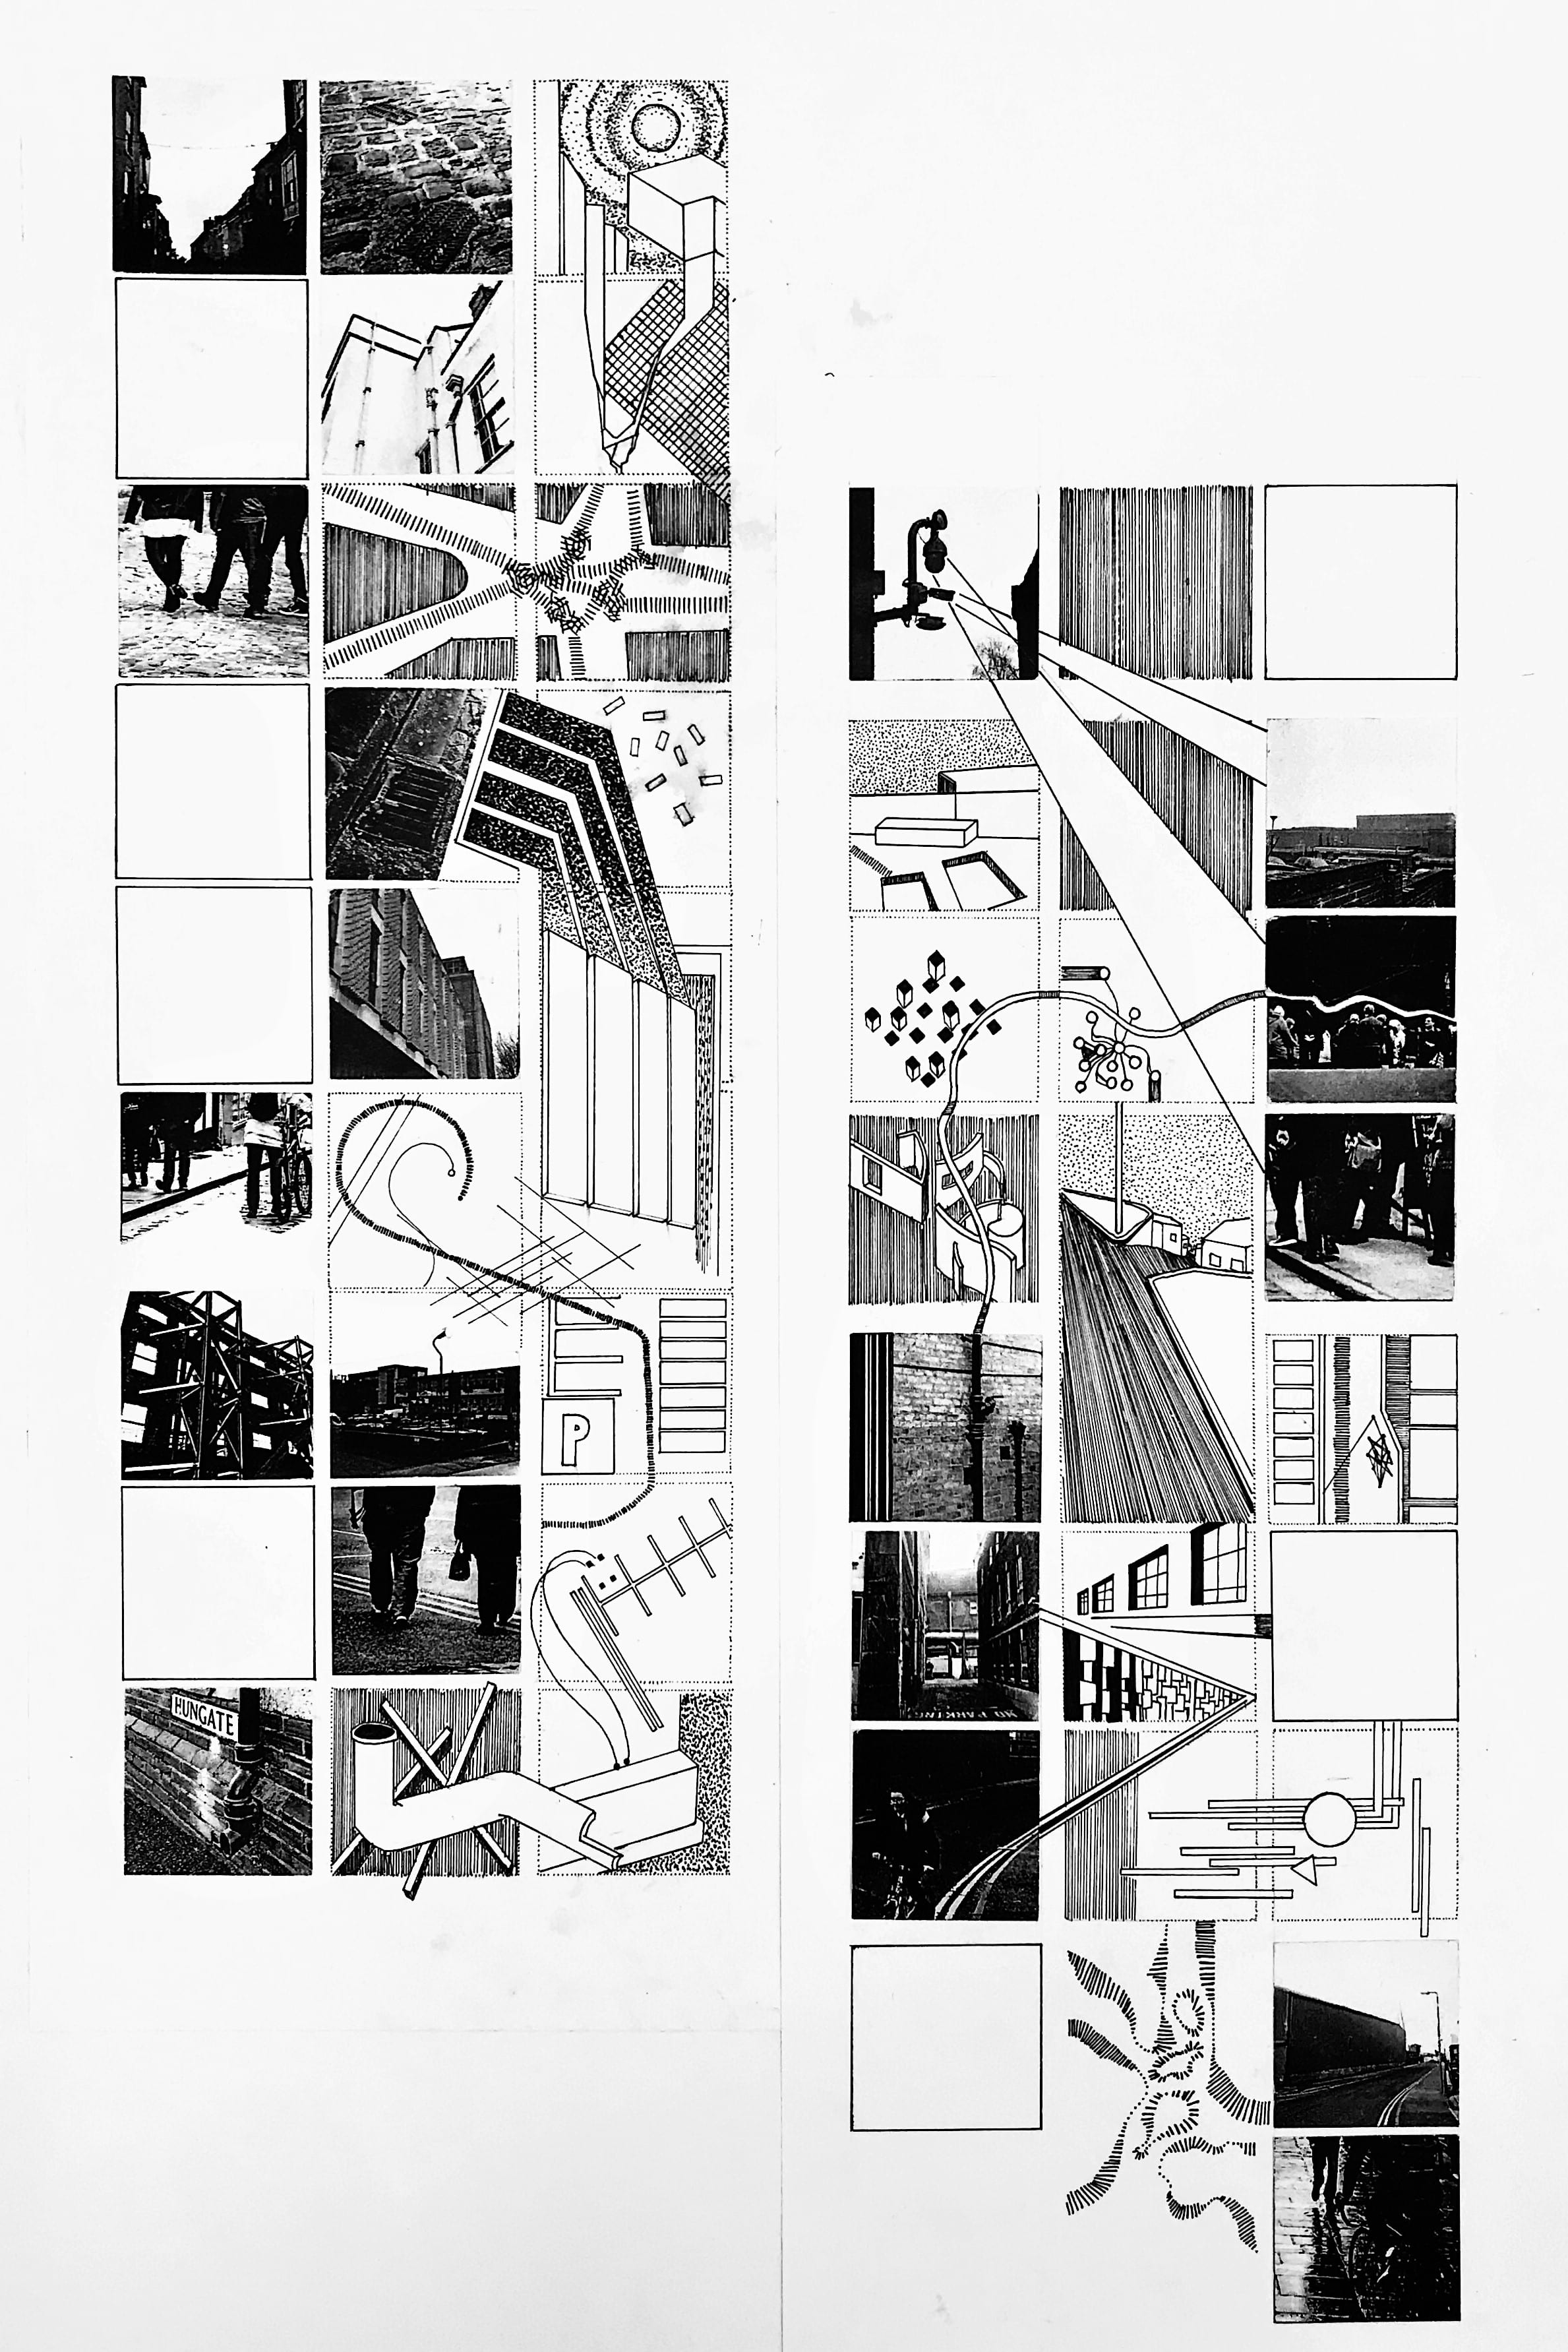 A collection of black and white illustrations, maps photographs from around a city.